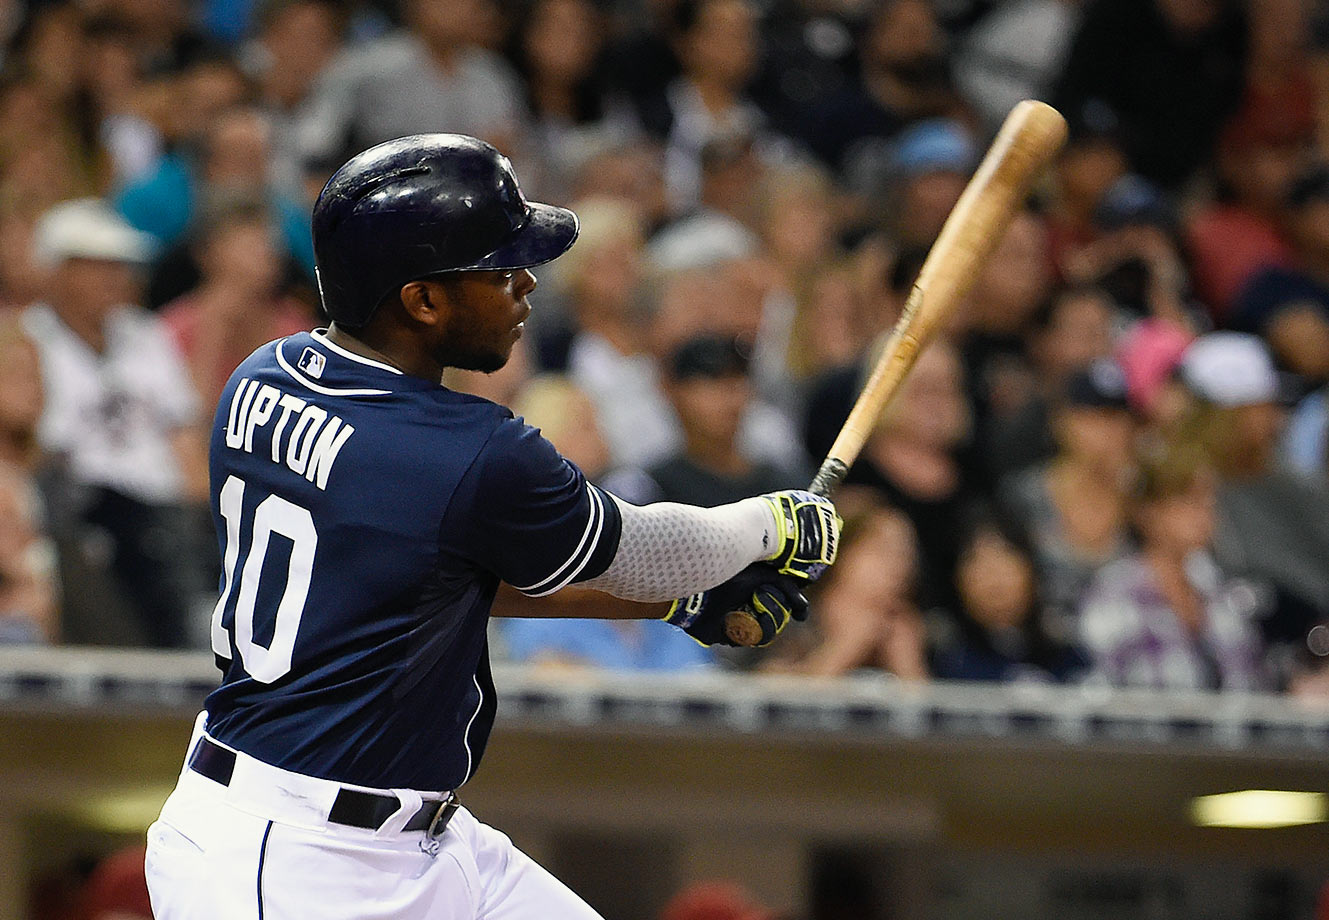 Upton, 28, signed with the Detroit Tigers on Jan. 18, 2016. He spent last season with the San Diego Padres after playing two years with the Atlanta Braves and six with the Arizona Diamondbacks. Upton earned his third All-Star appearance in 2015, batting .251 with 26 home runs and 81 RBIs. He also stole 19 bases, his most since 2011.